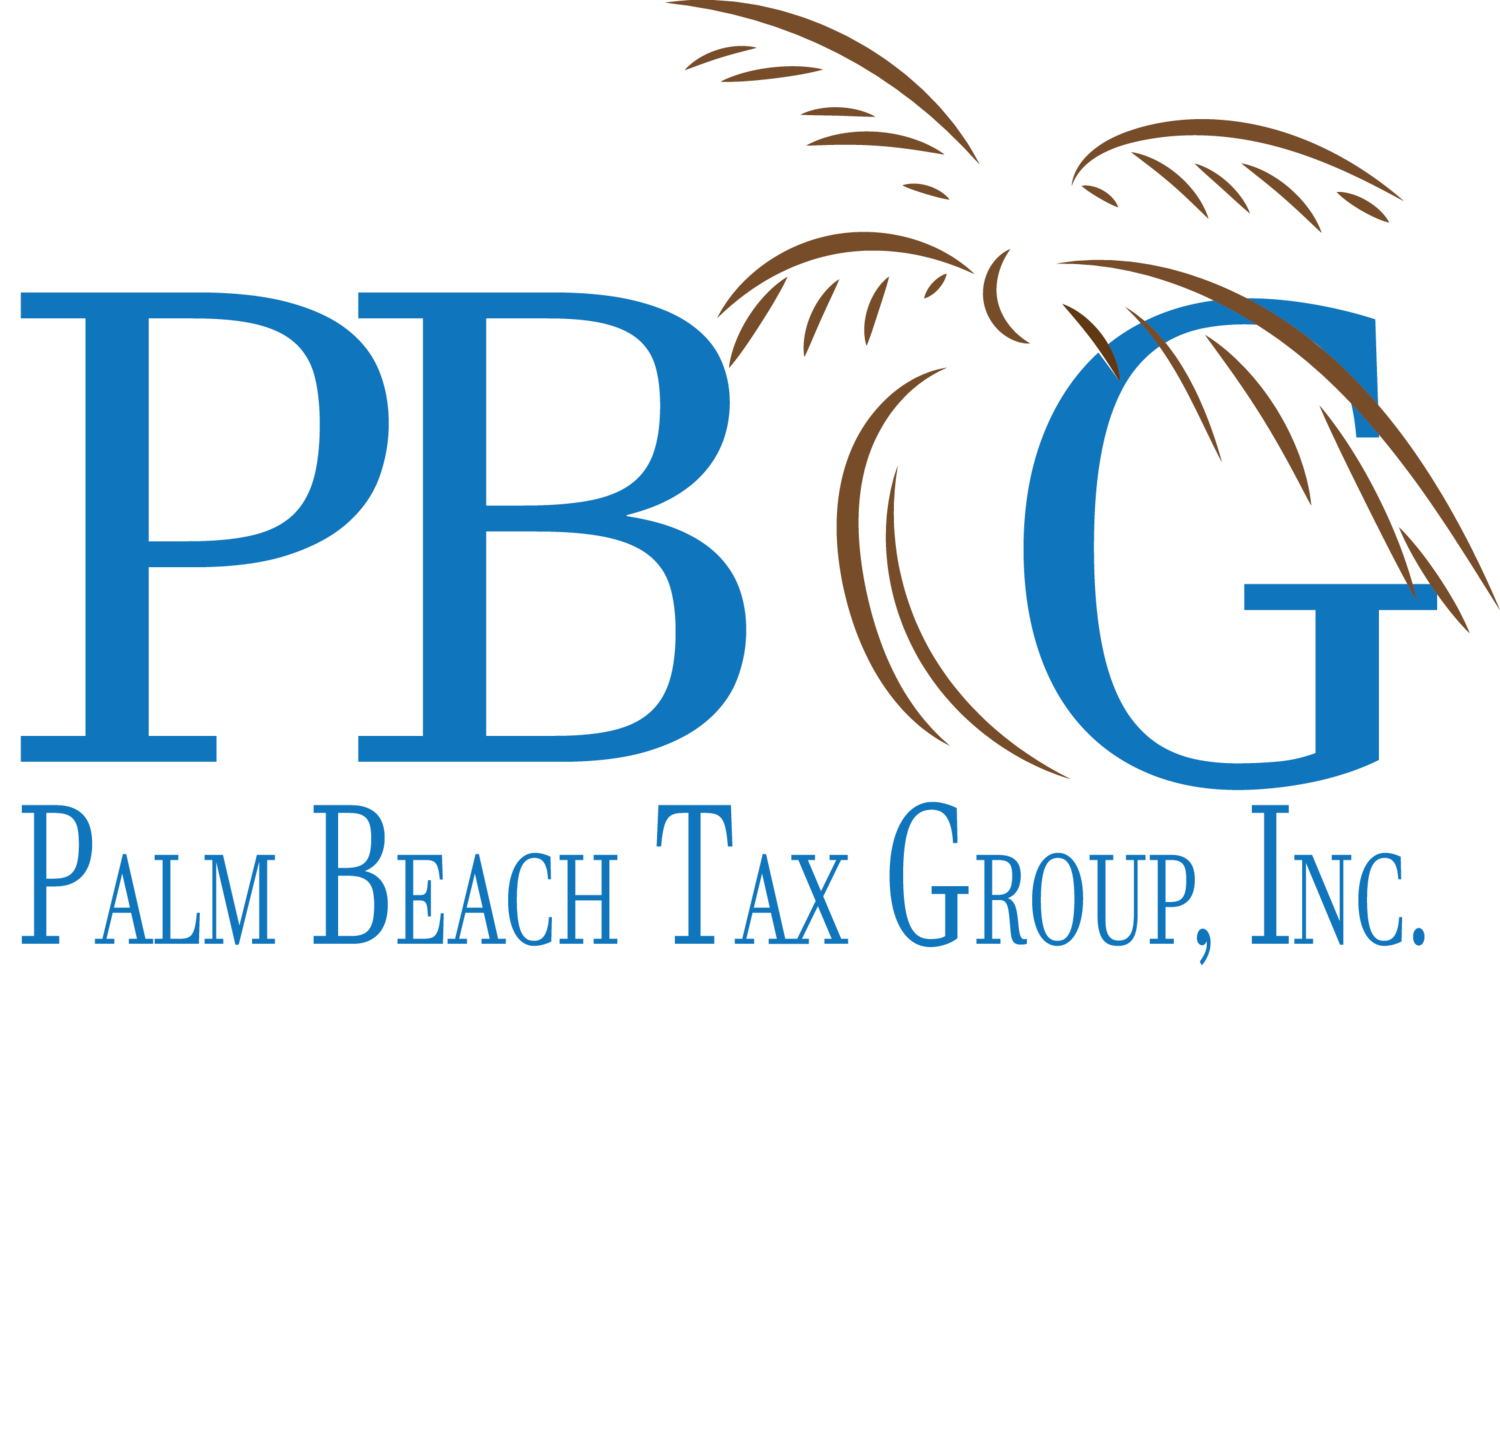 Palm Beach Tax Group